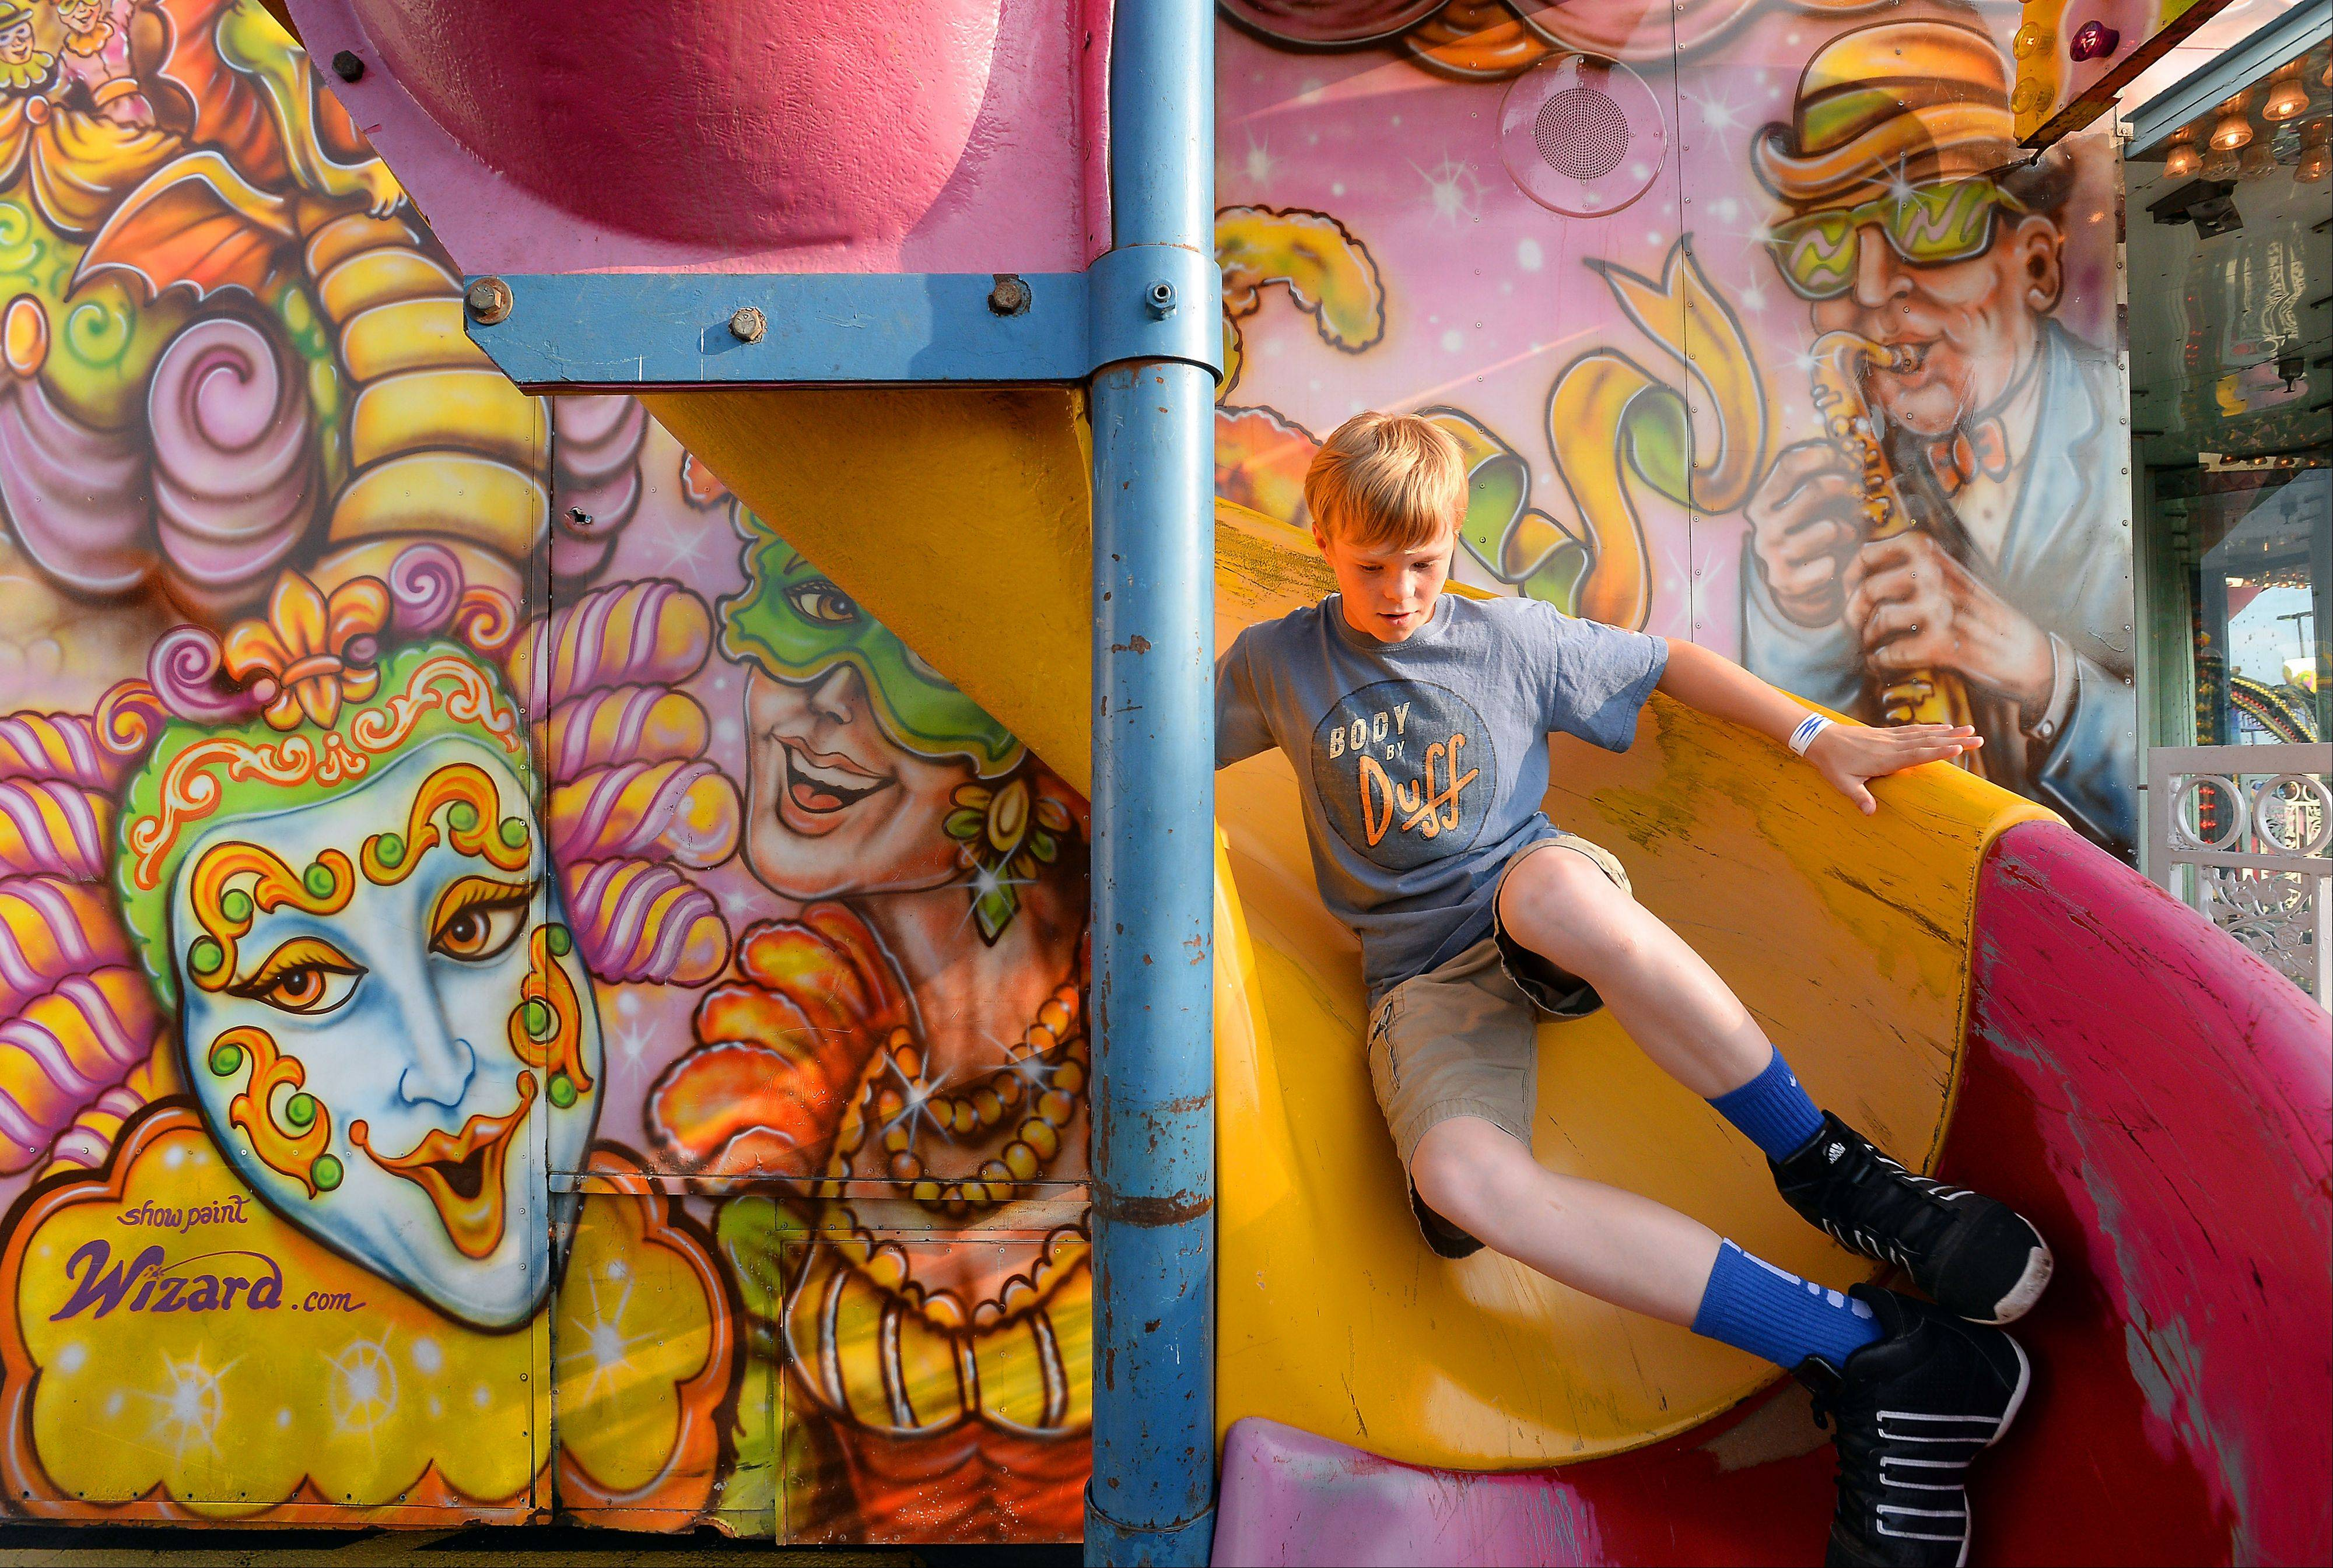 Jackson Reuter,13, of Elgin takes a spin on the Mardi Gras slide.